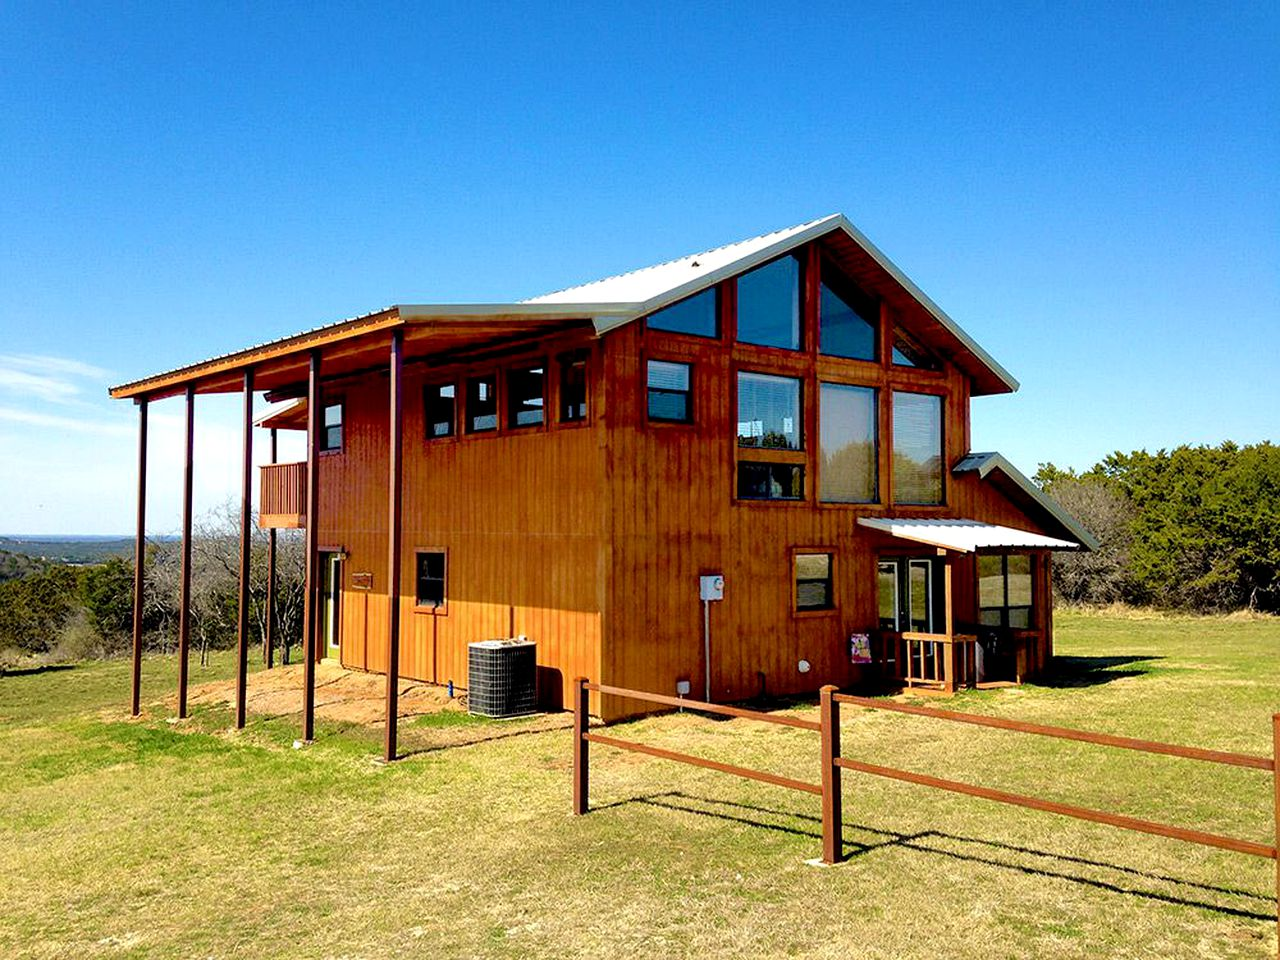 Vacation Rentals (Glen Rose, Texas, United States)